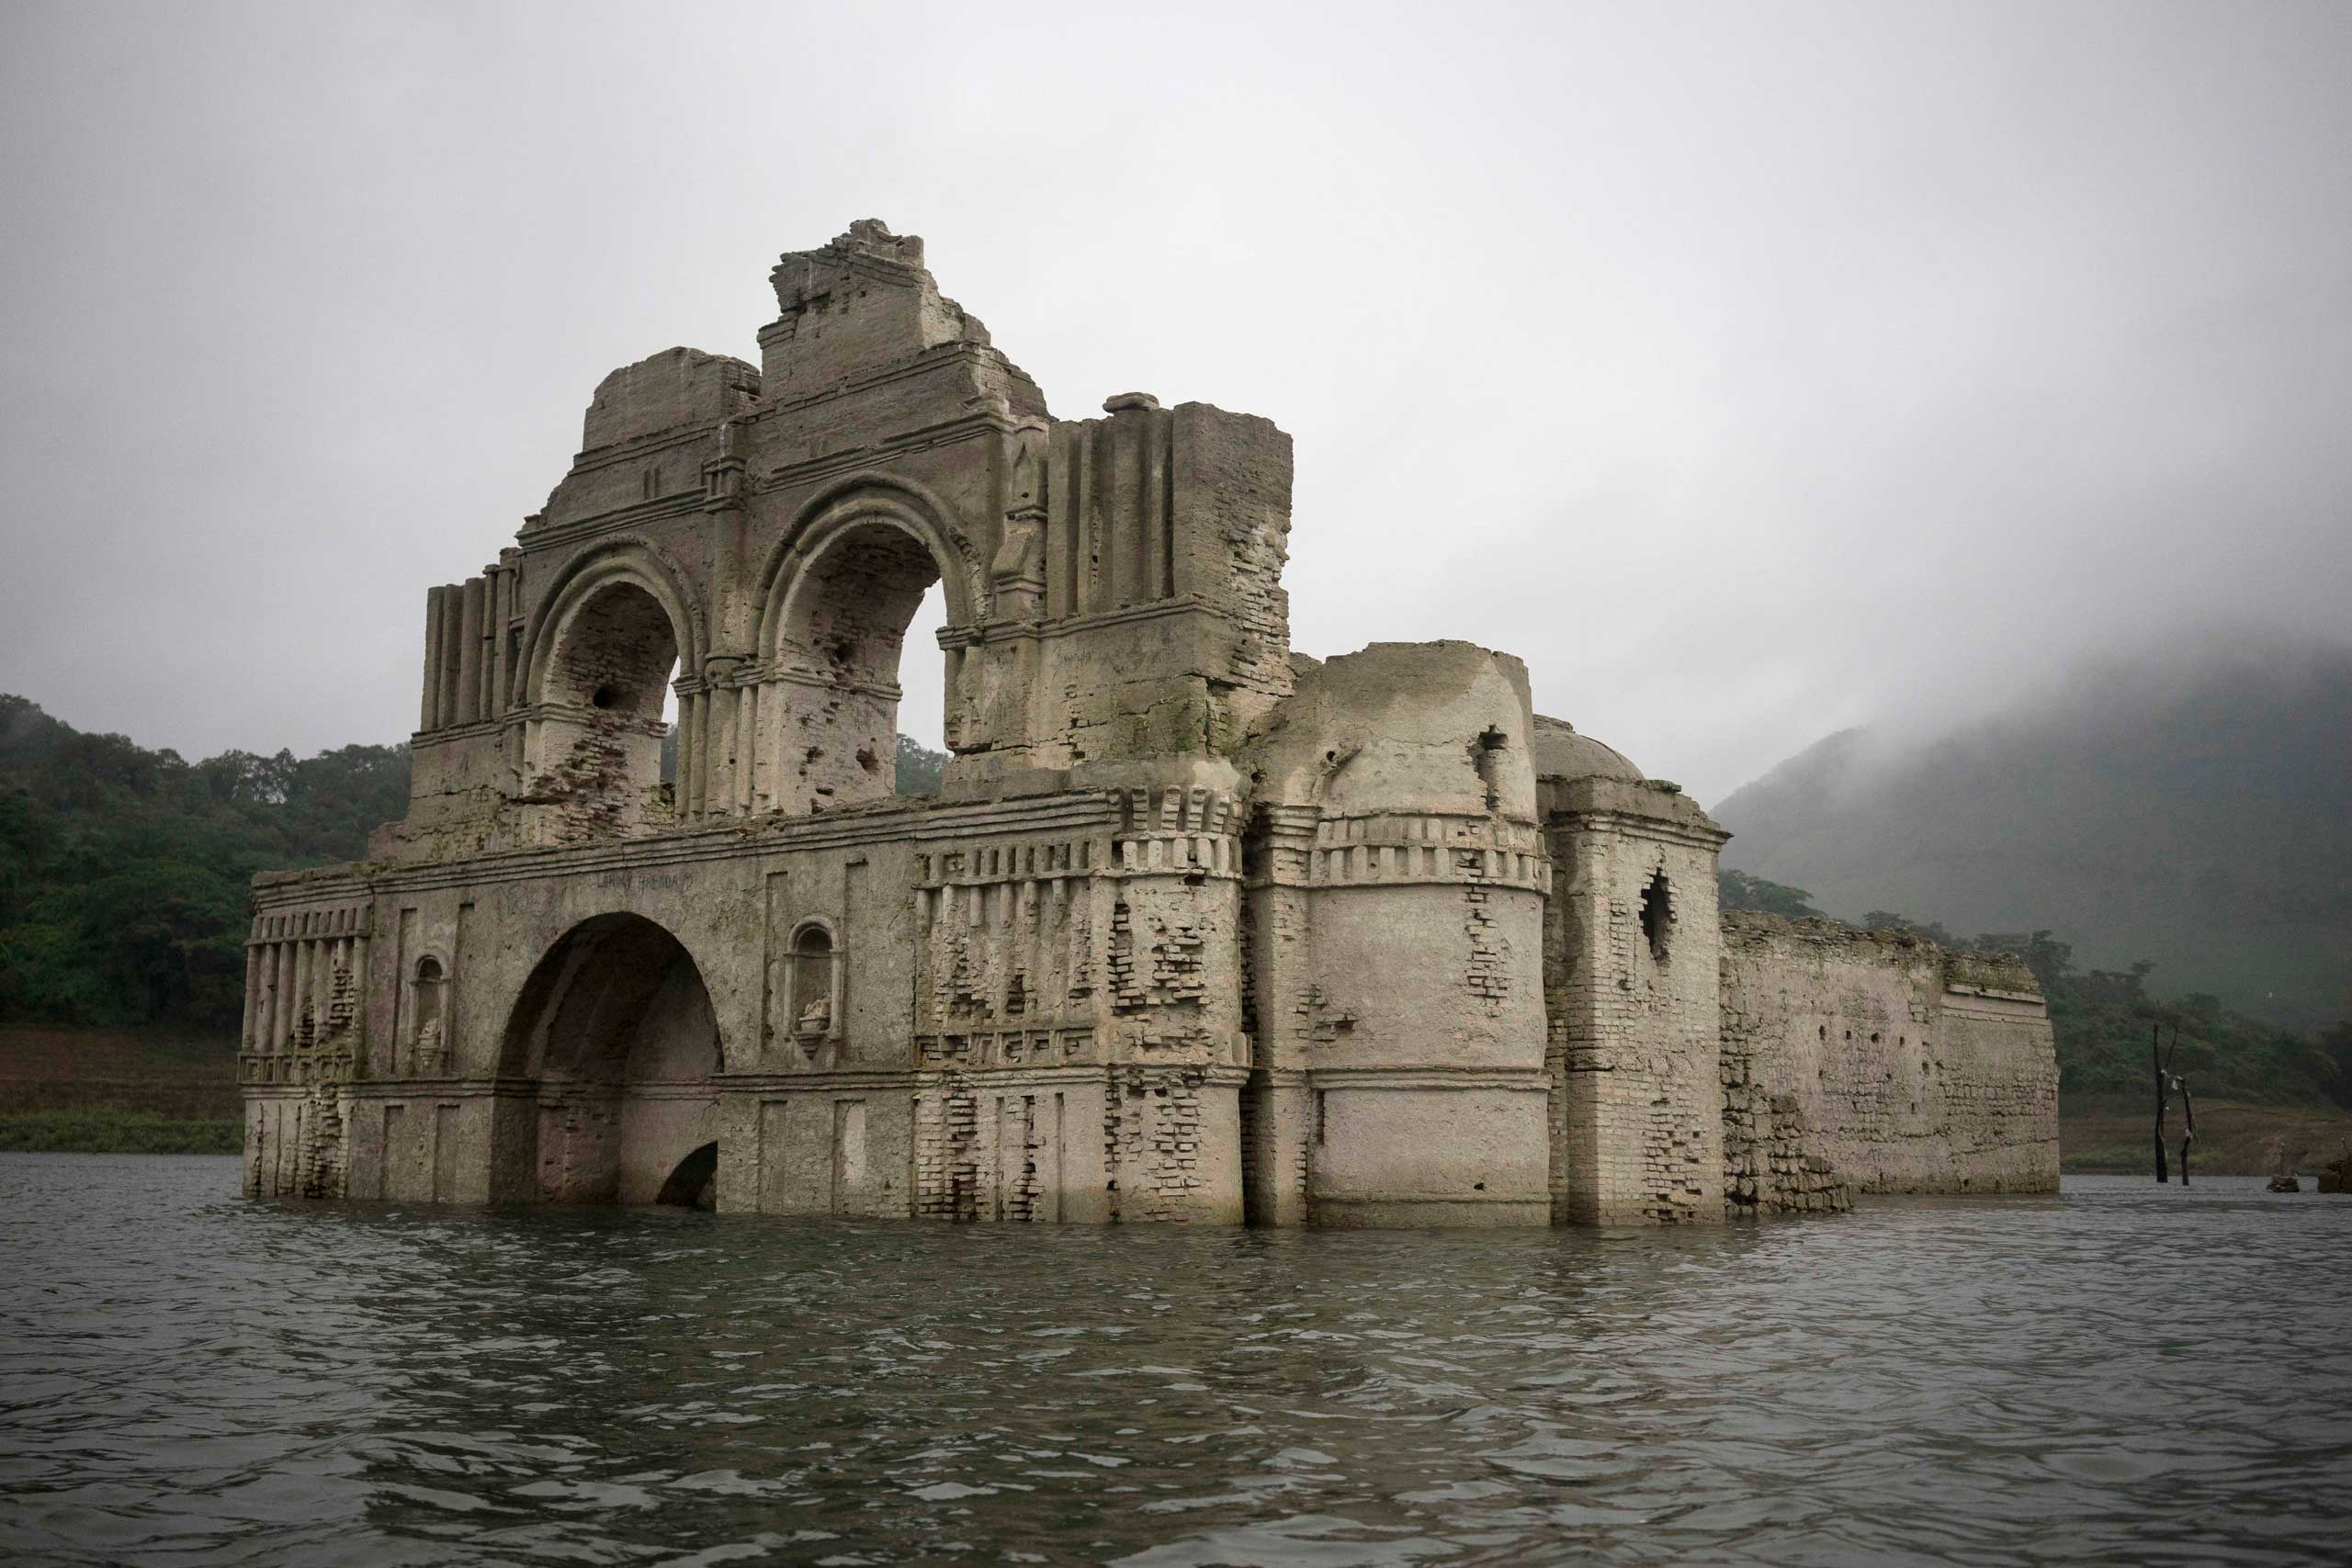 The remains of a mid-16th century church known as the Temple of Santiago, as well as the Temple of Quechula, is visible from the surface of the Grijalva River, which feeds the Nezahualcoyotl reservoir, due to the lack of rain near the town of Nueva Quechula, in Chiapas state, Mexico, Oct. 16, 2015.